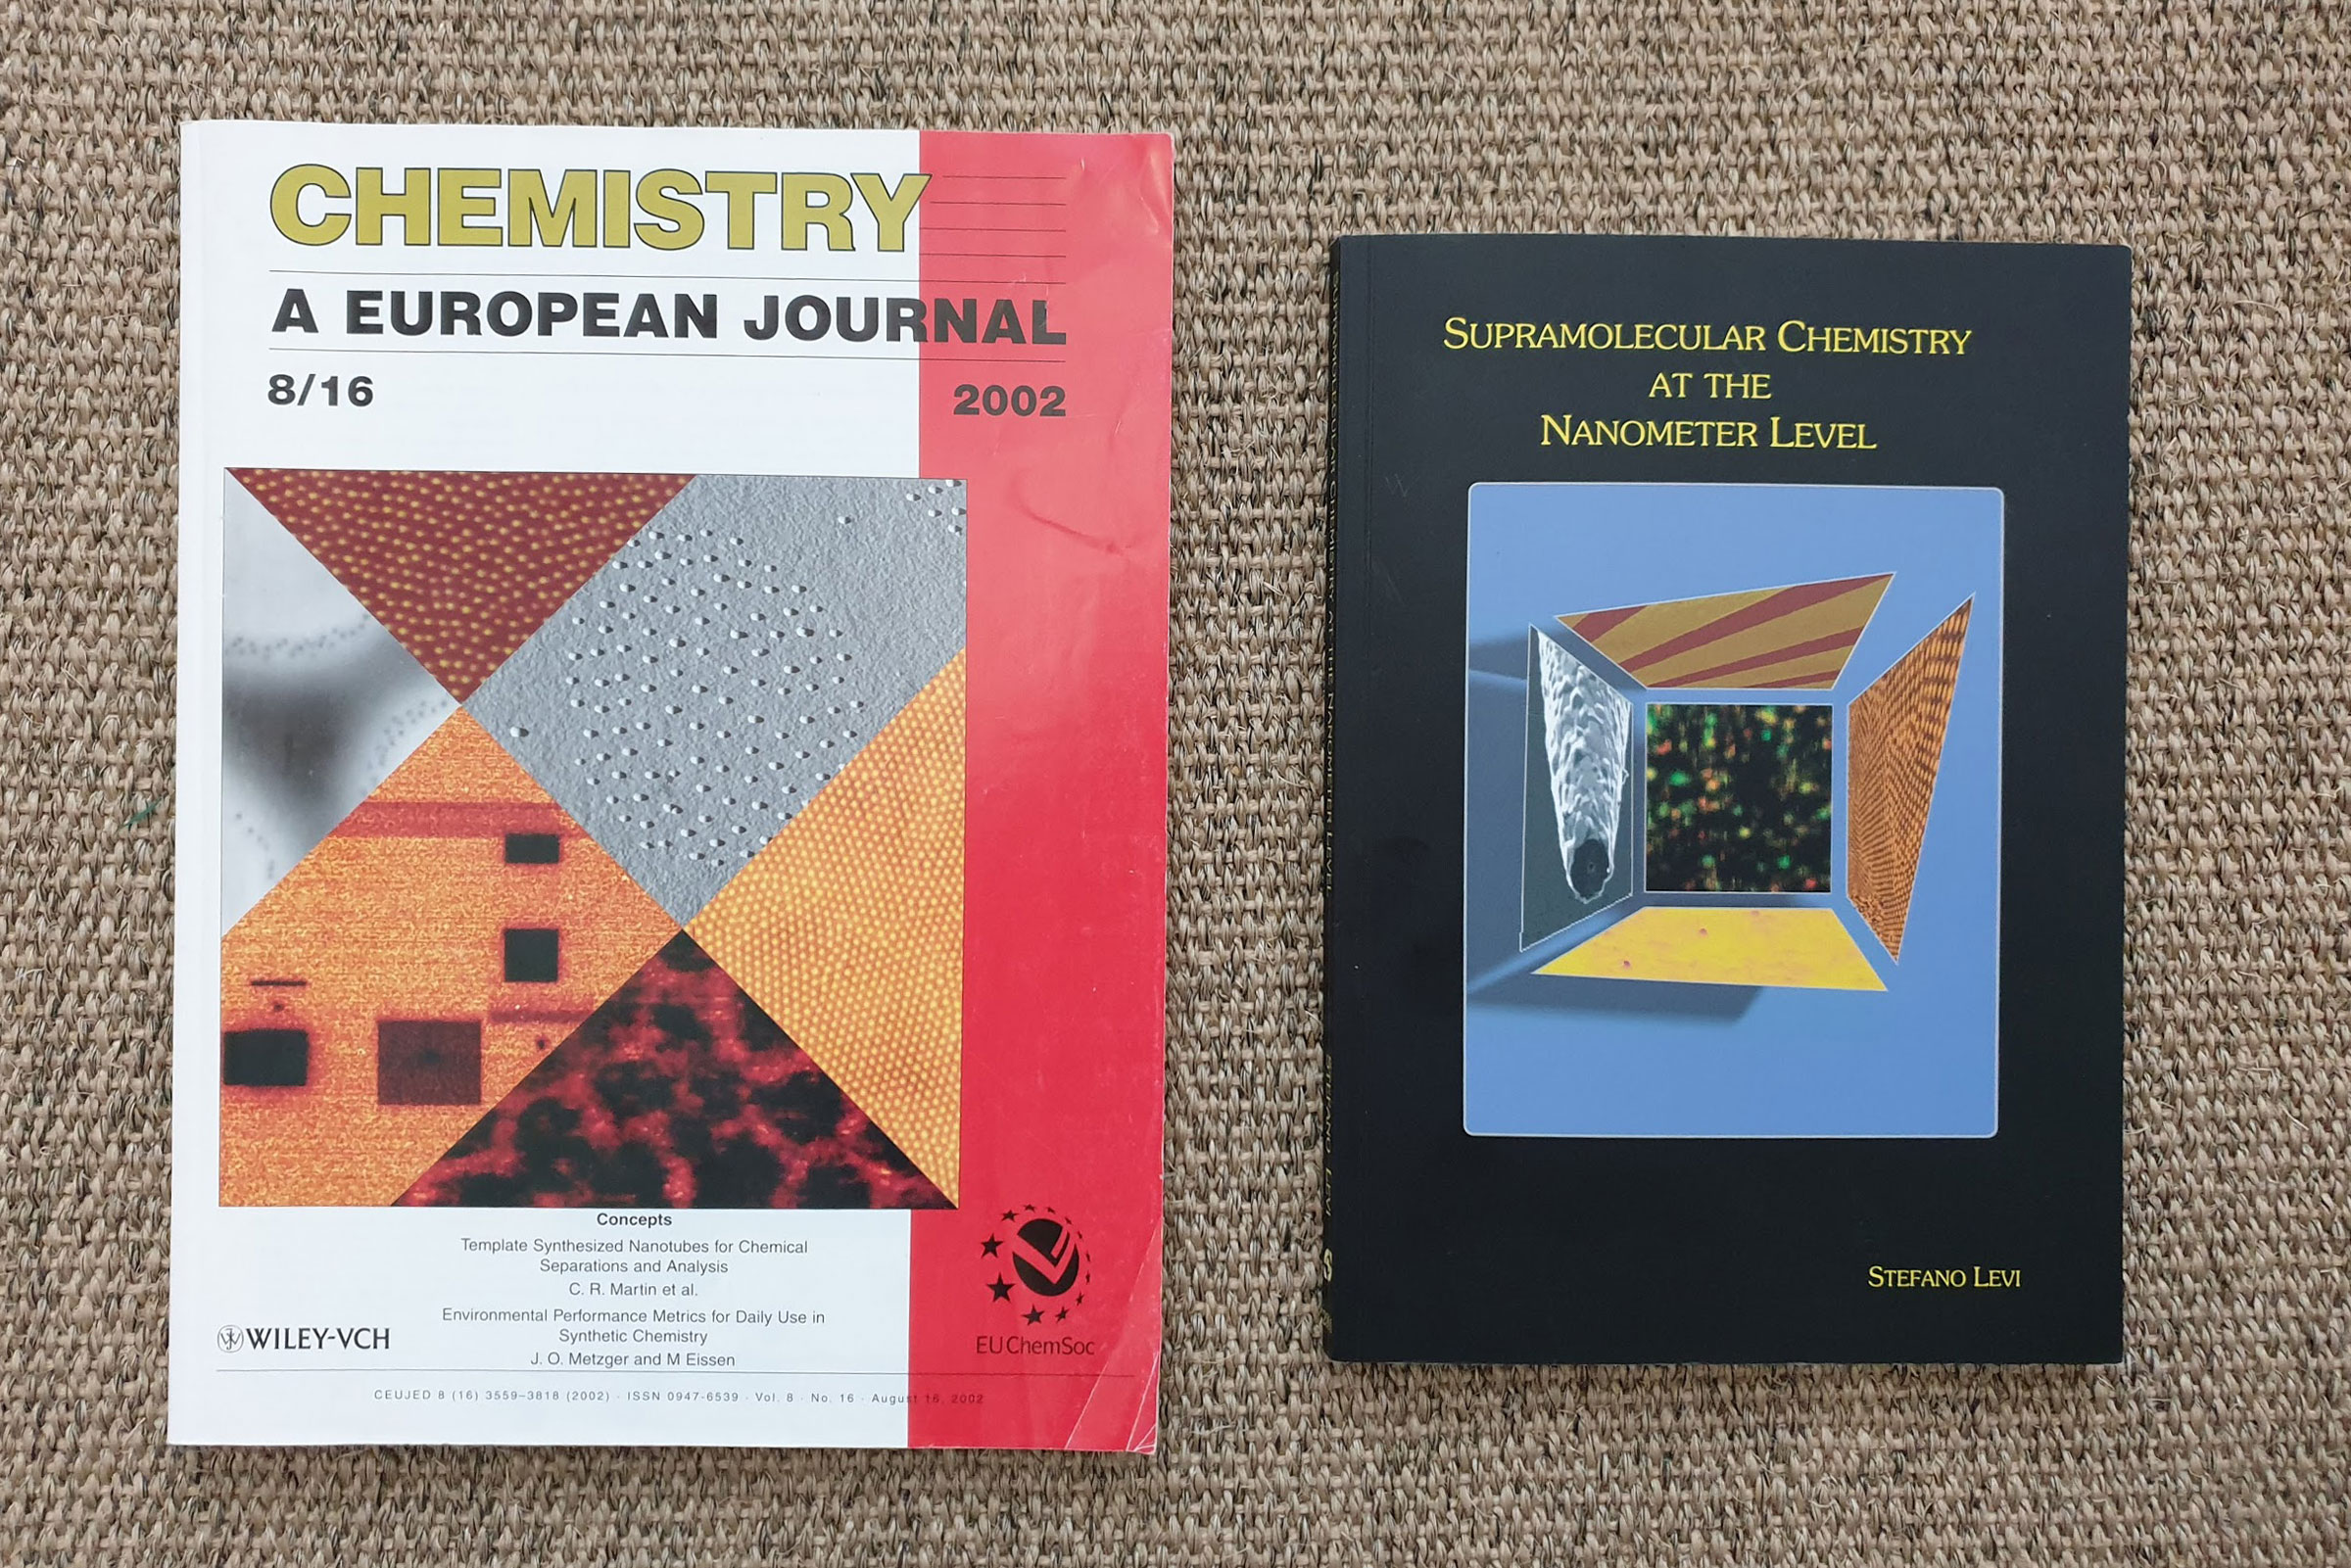 The images of my research on the cover of Chemistry, a European Journal, and a copy of my Ph.D. Thesis